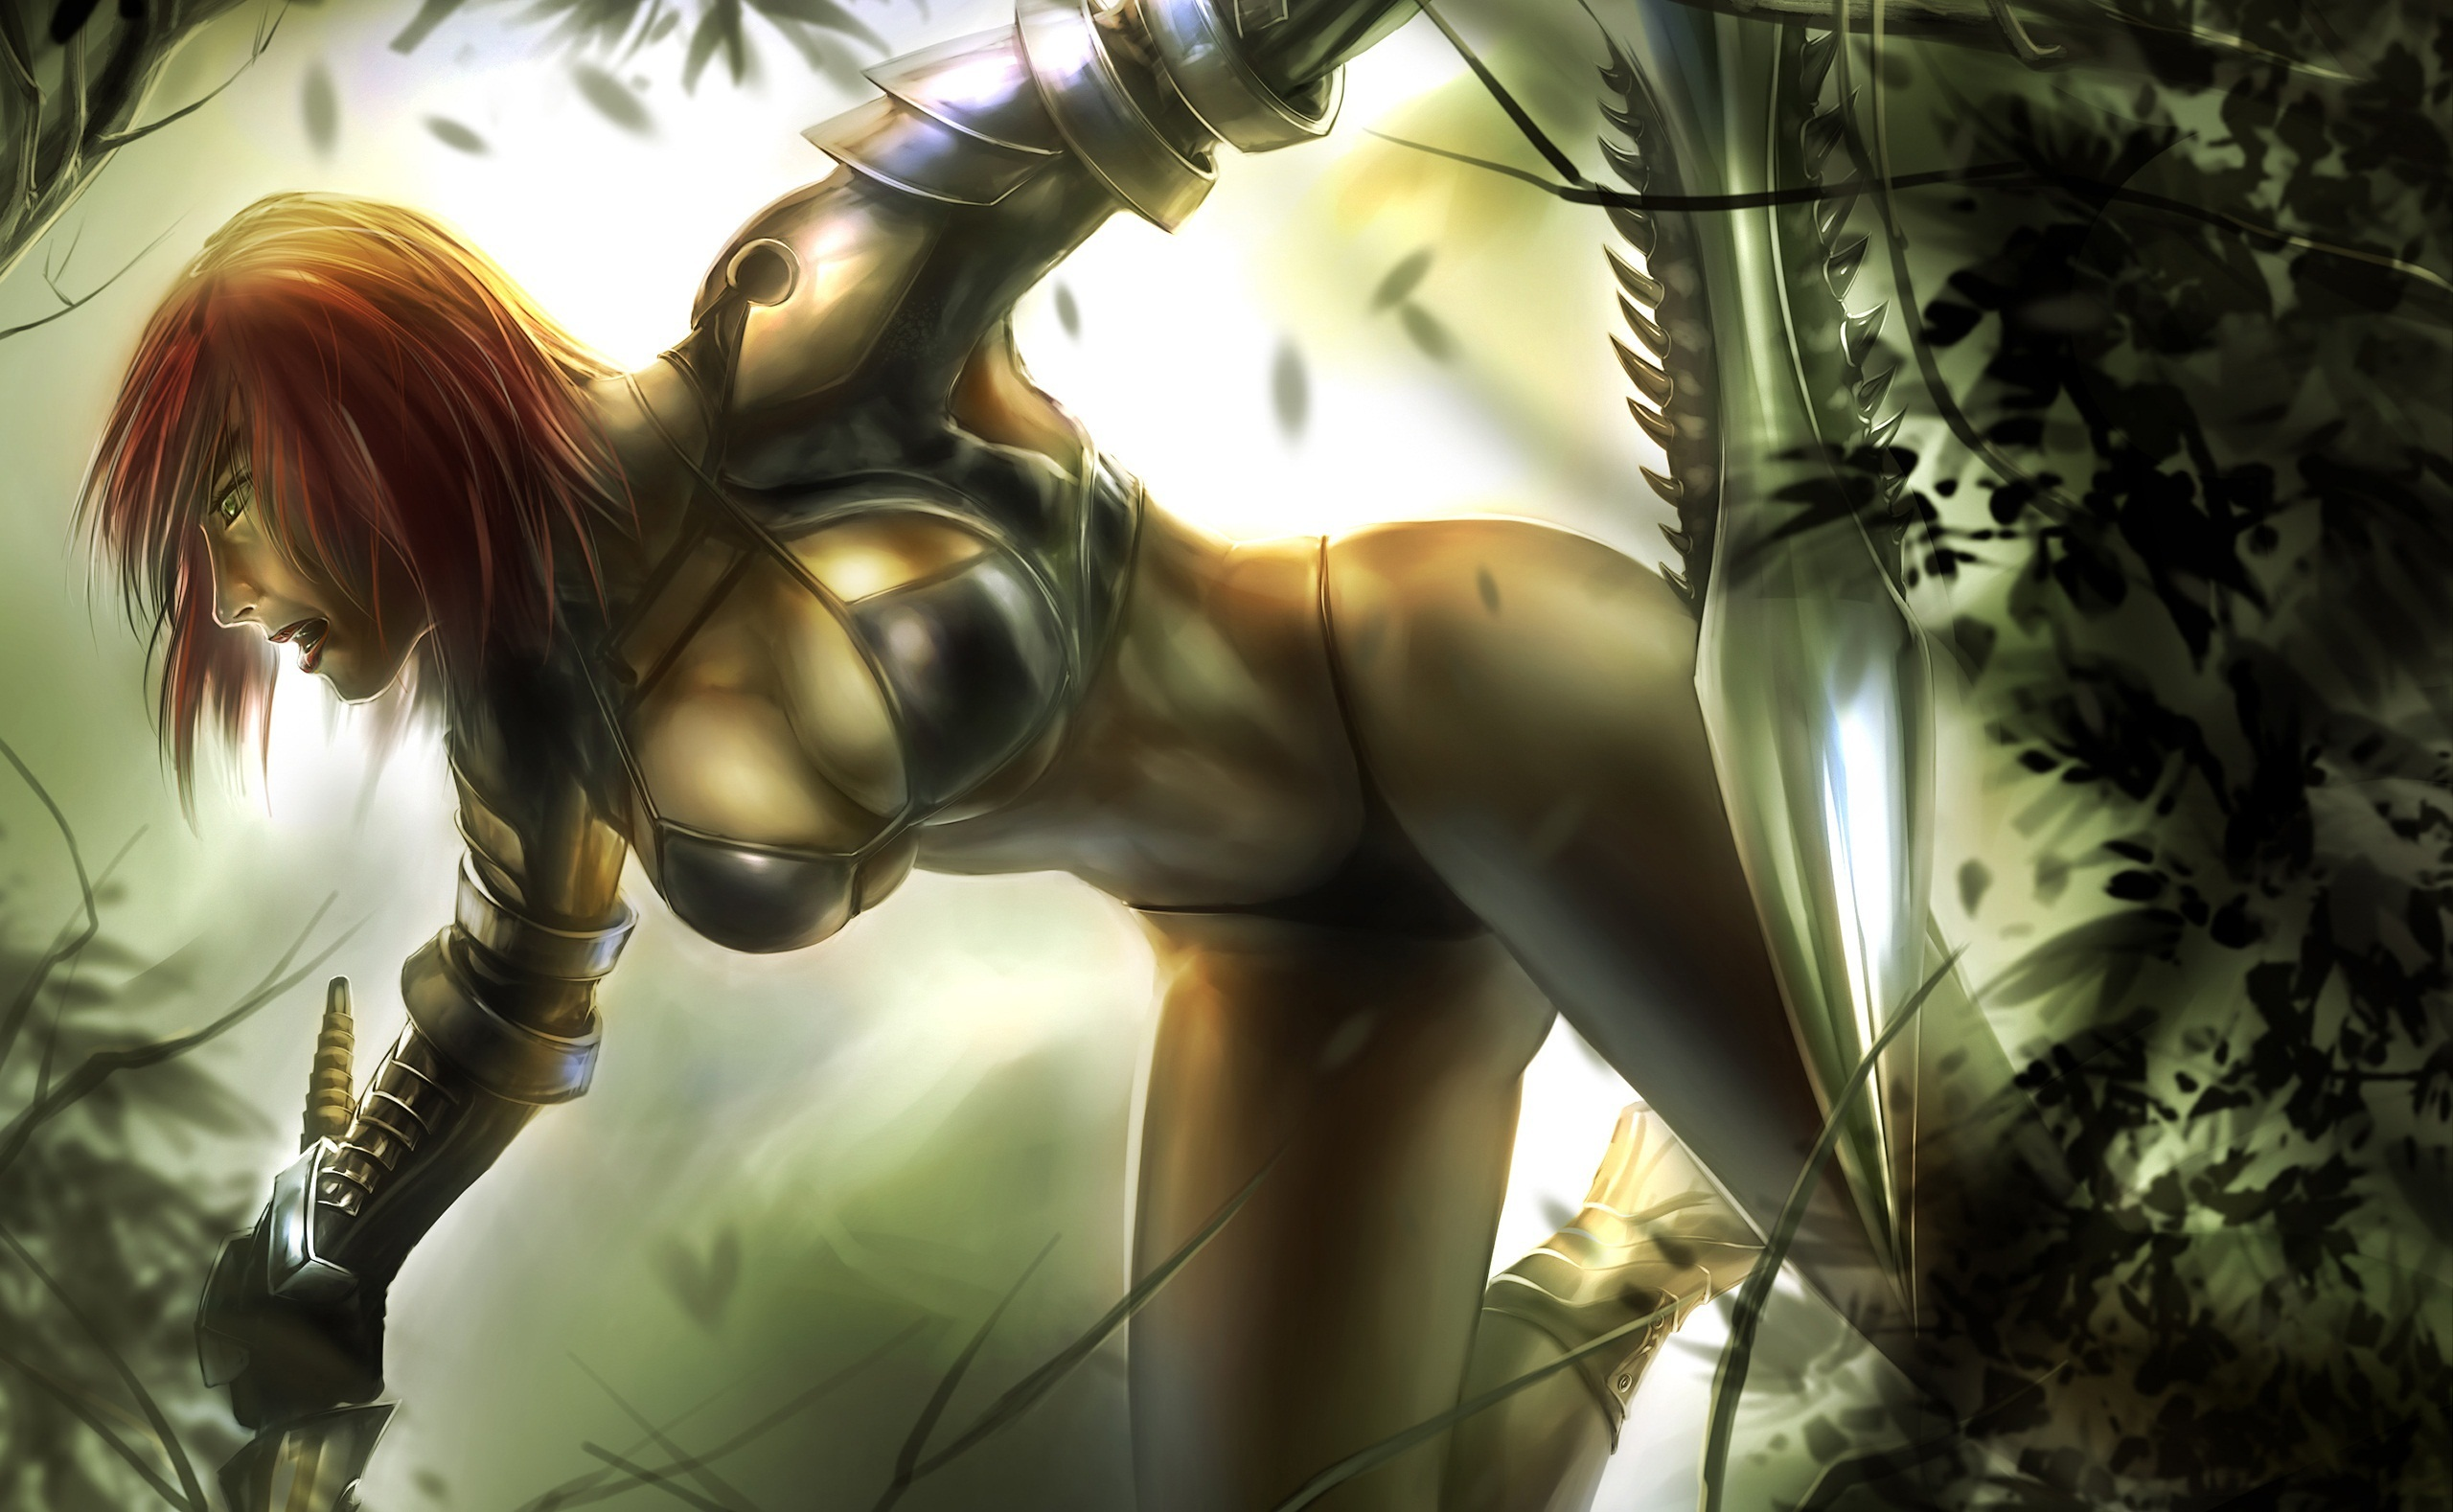 Female warriors erotic pic anime images